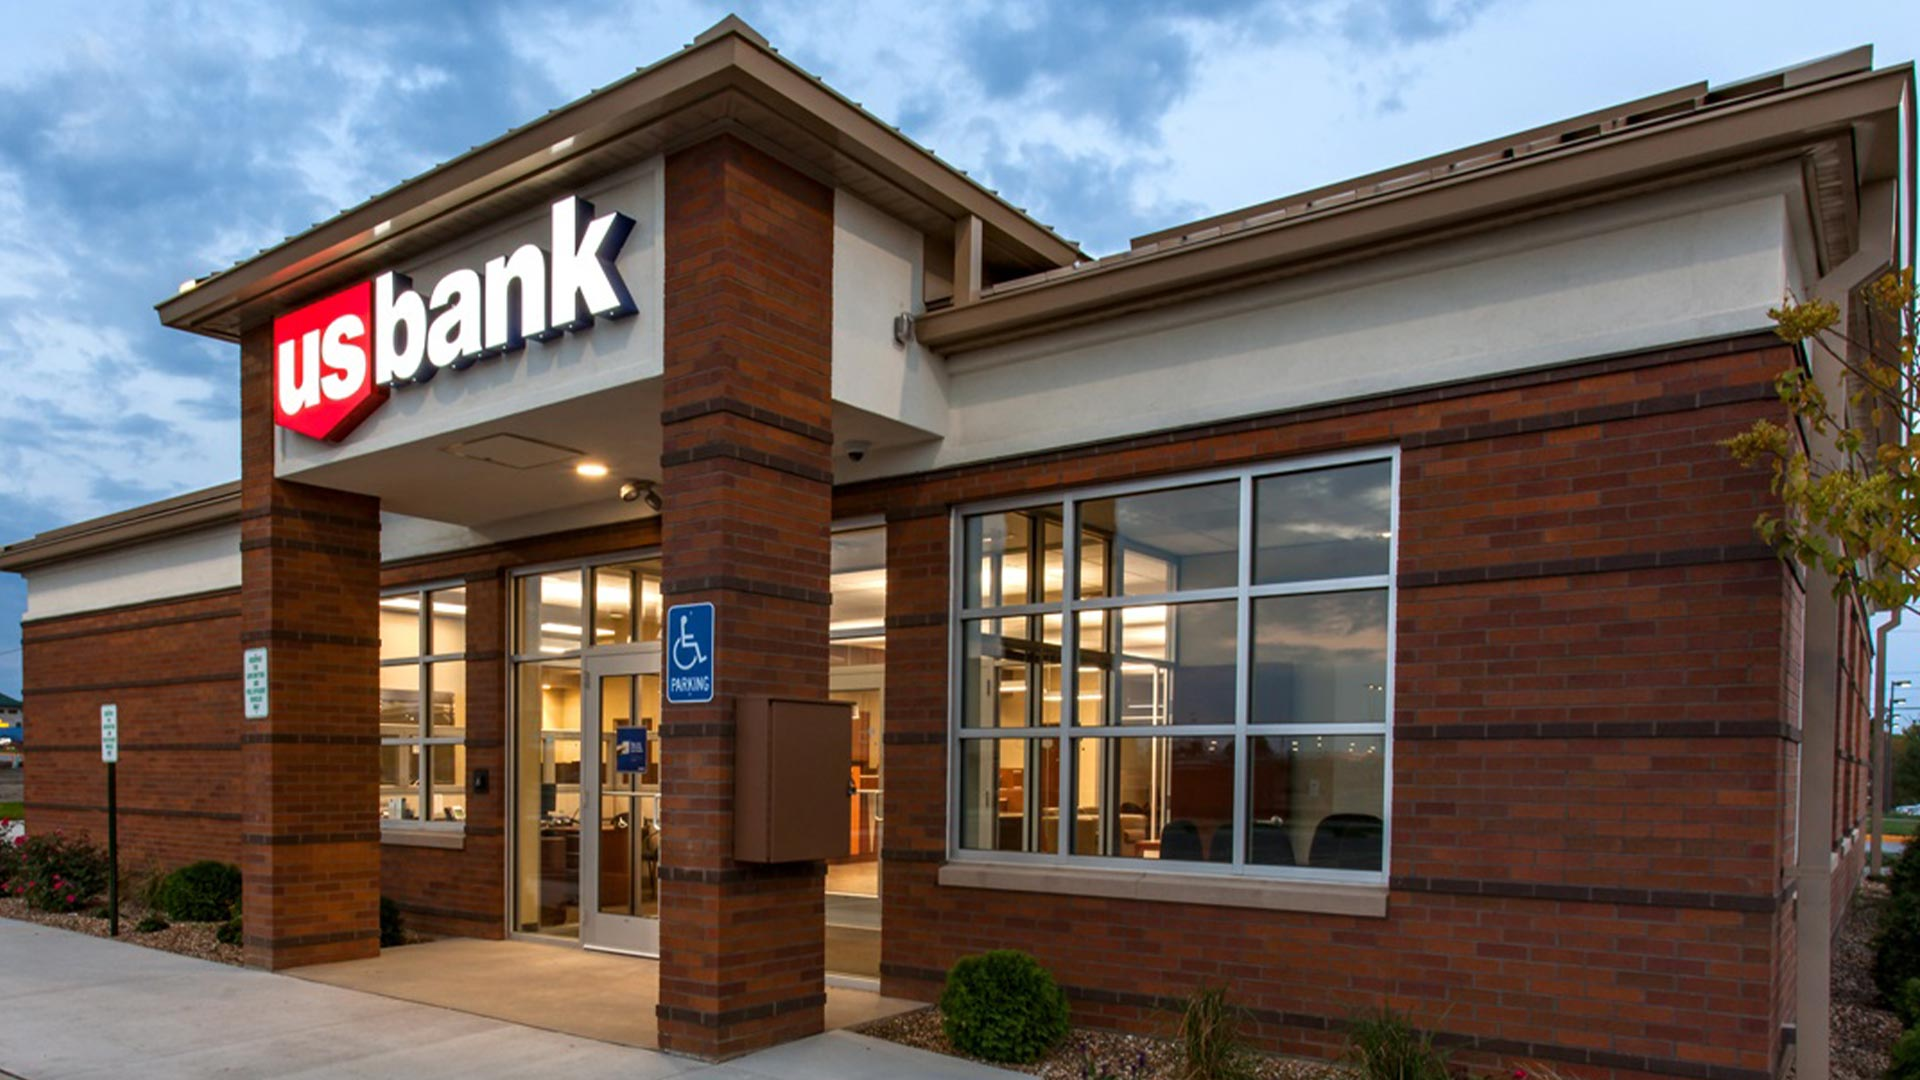 US Bank mortgage review, US Bank branch presence - The Mortgage Reports